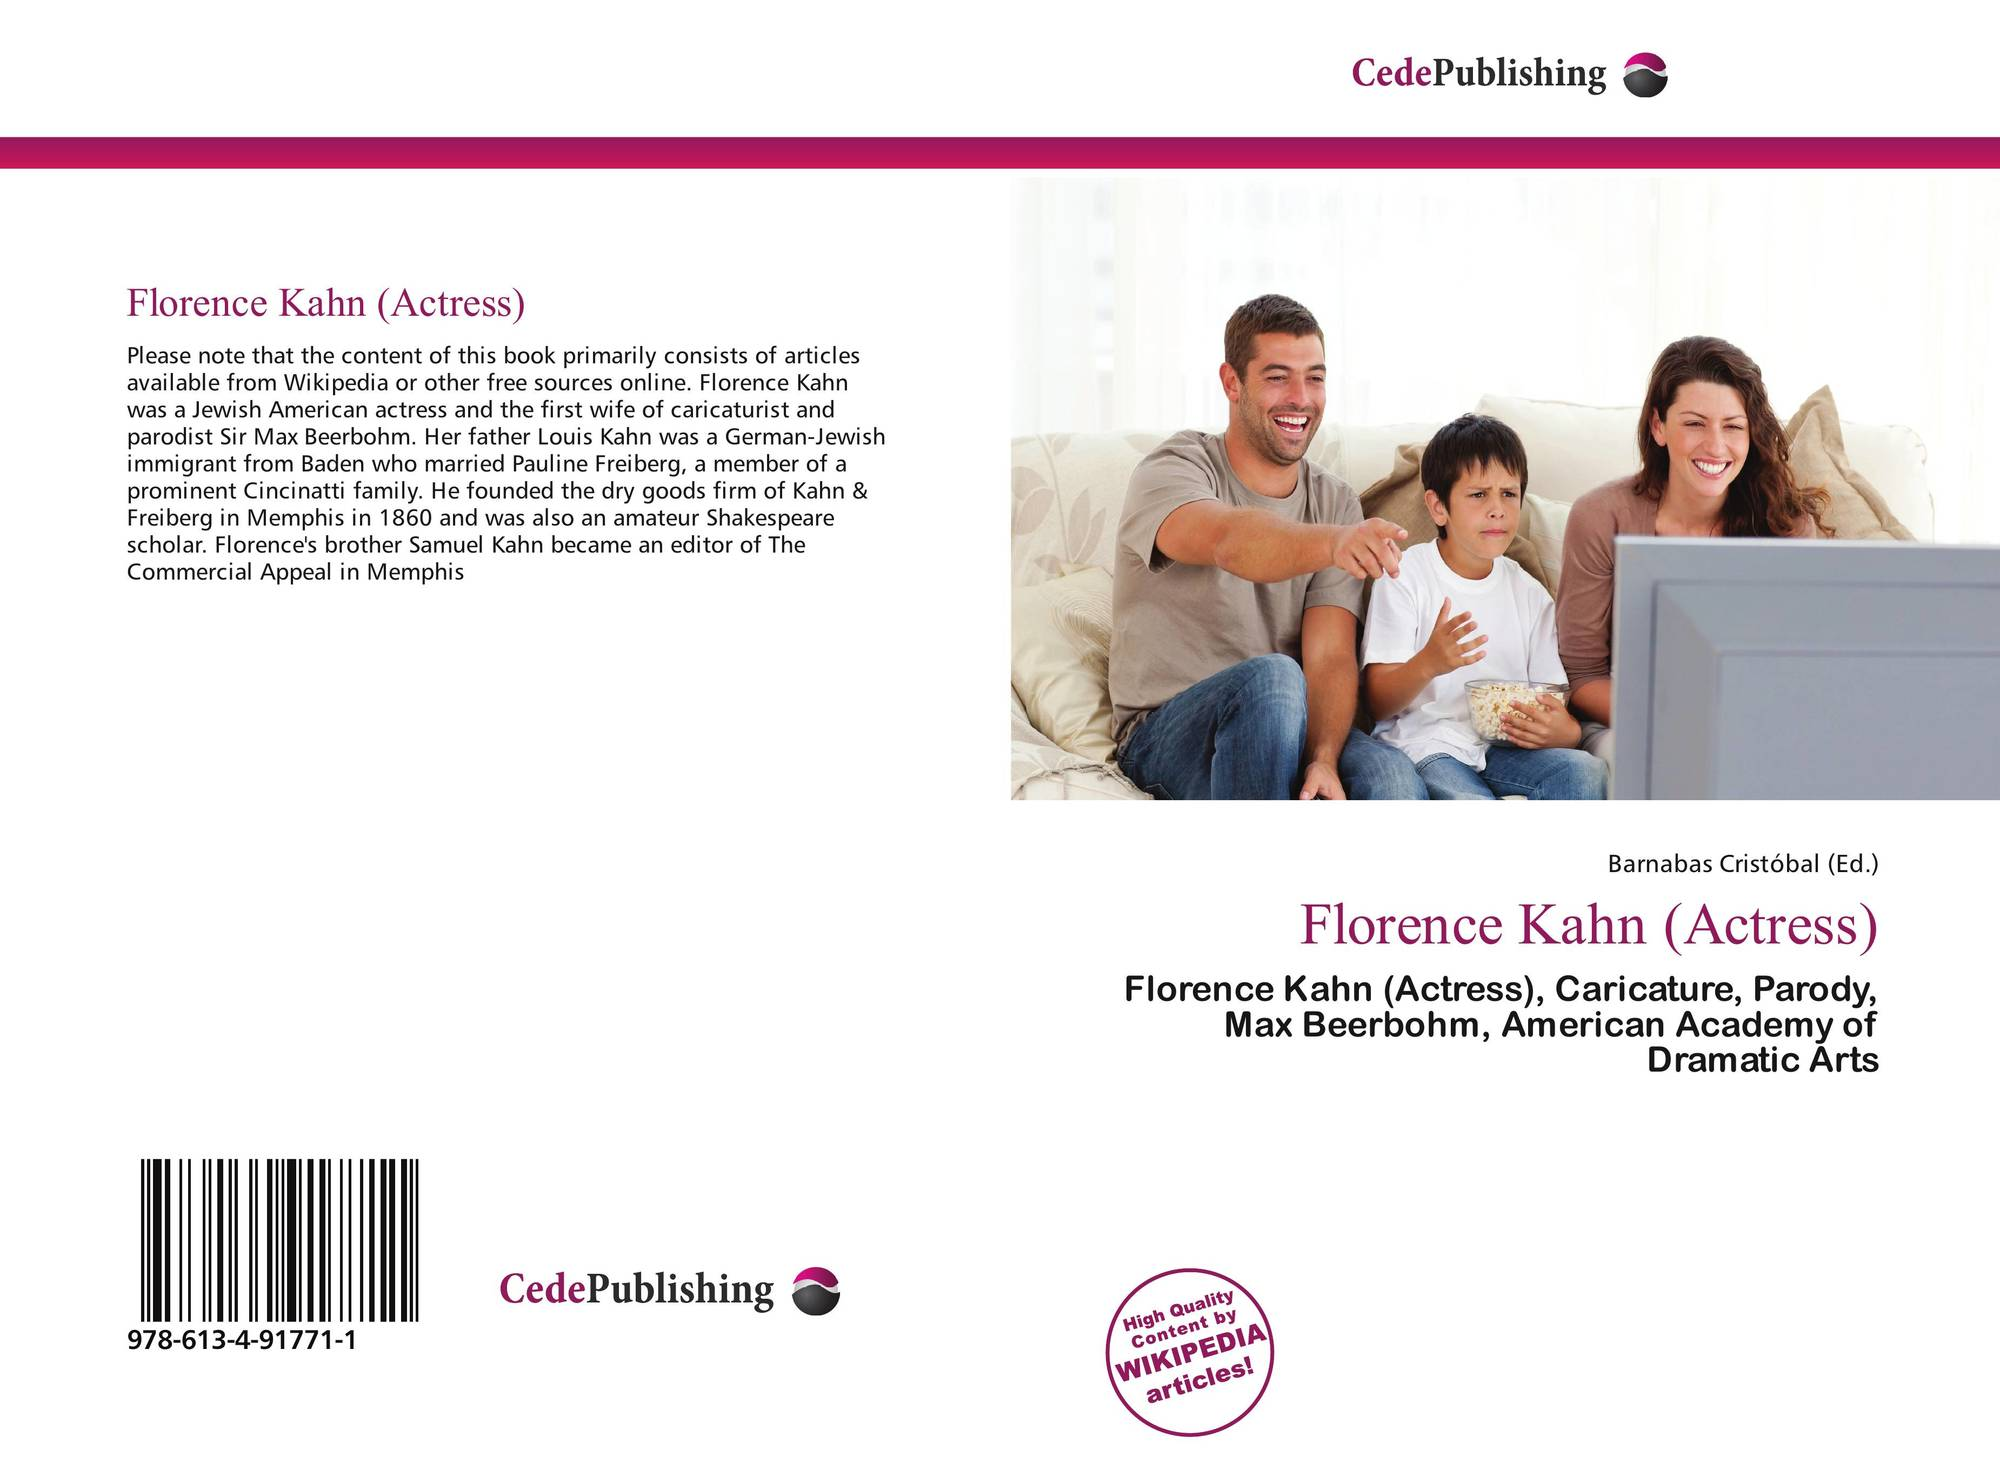 Communication on this topic: Elias Toufexis, florence-kahn-actress/